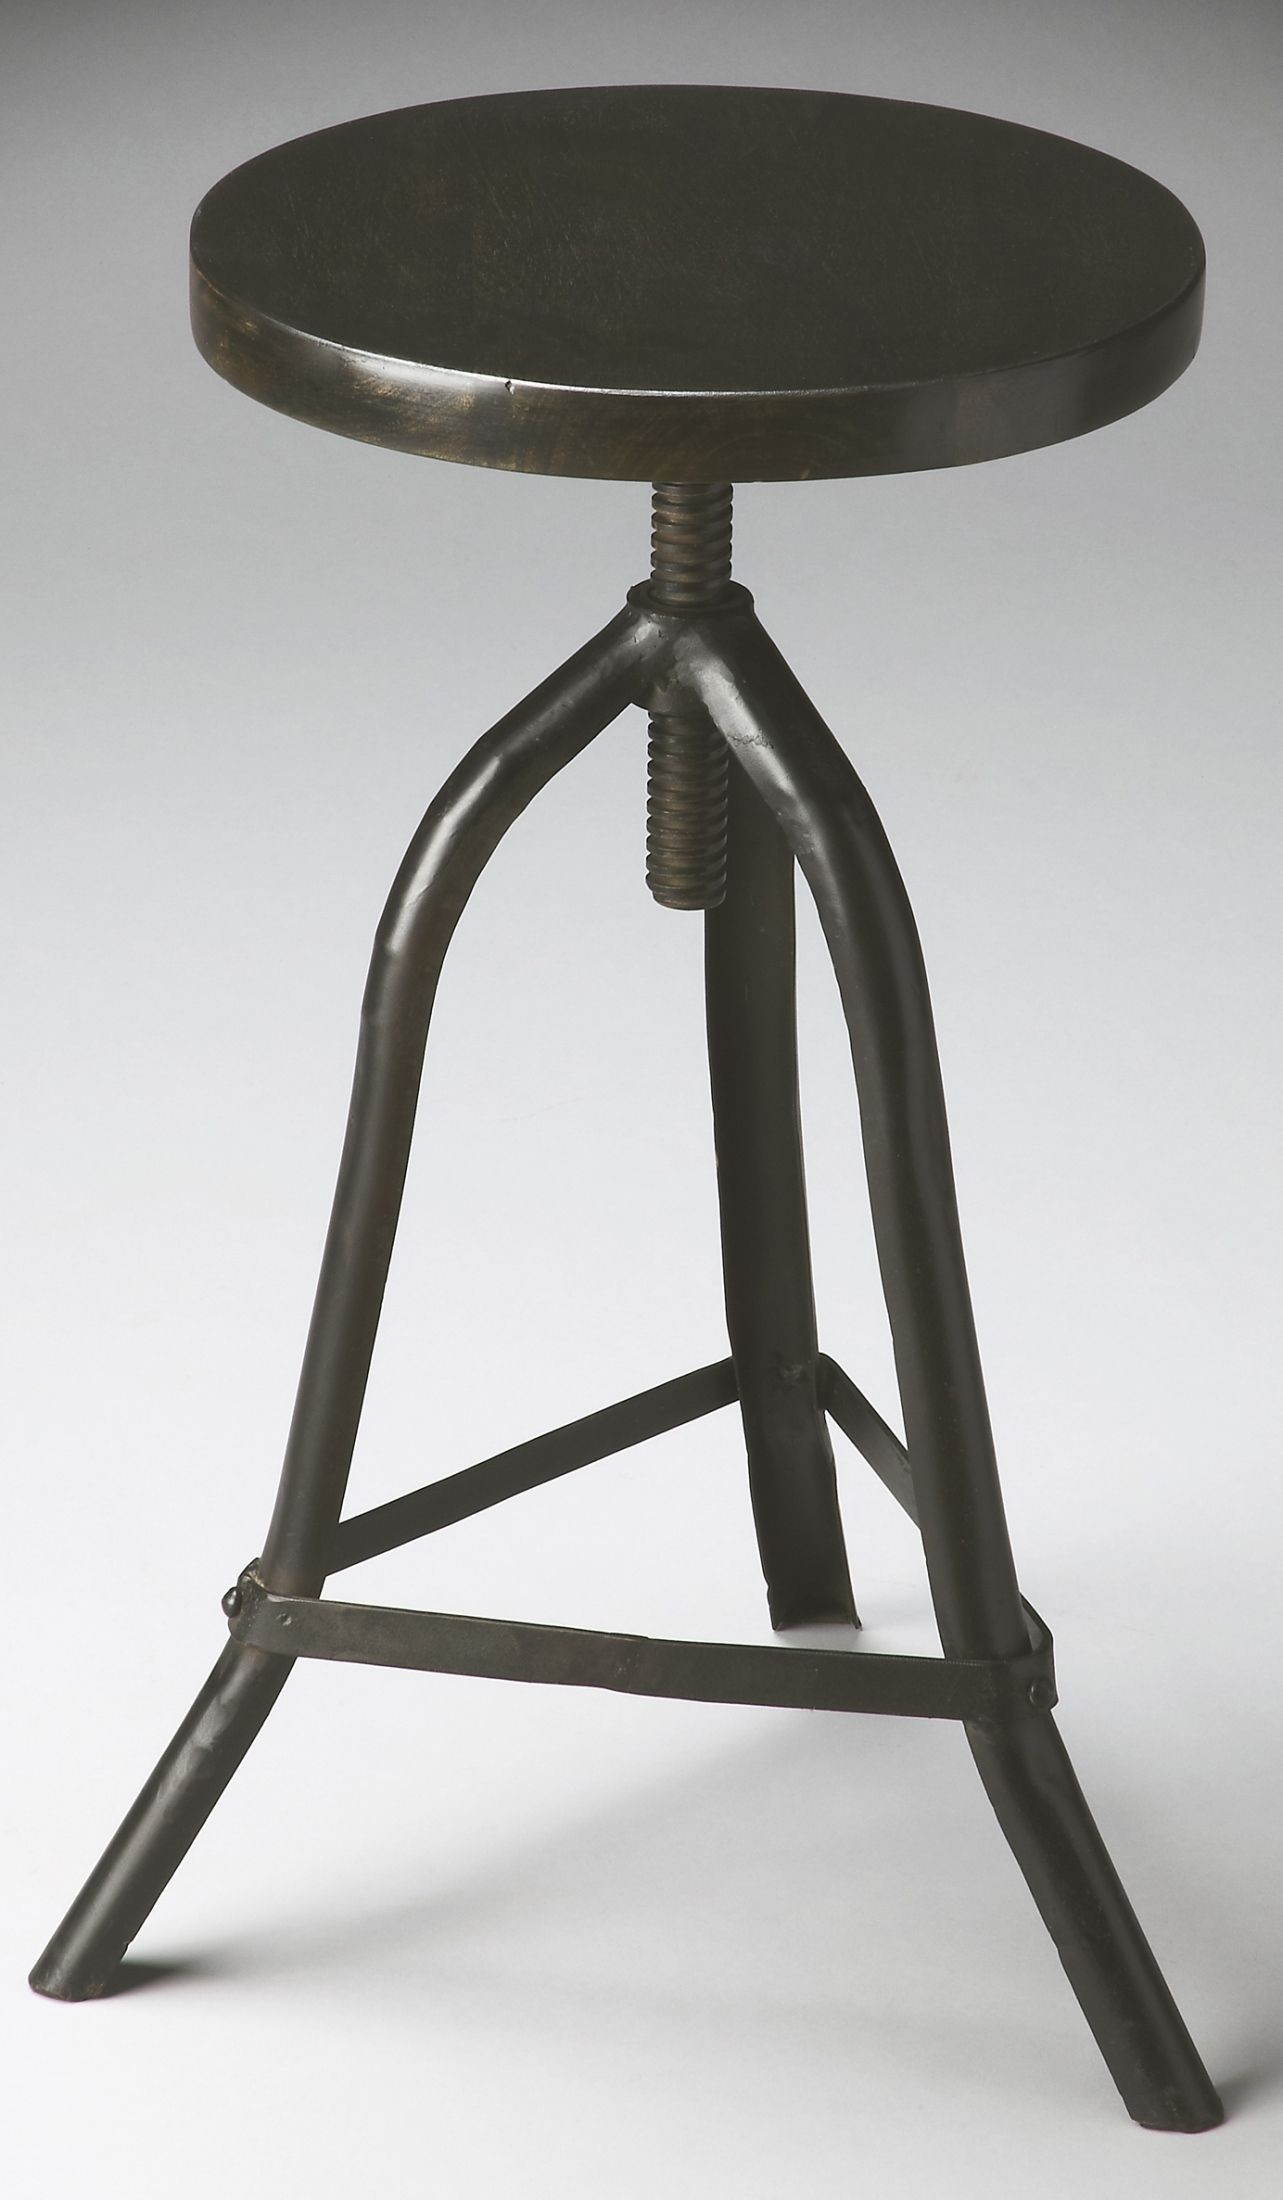 revolving chair with net manual lift industrial chic metalworks stool from butler